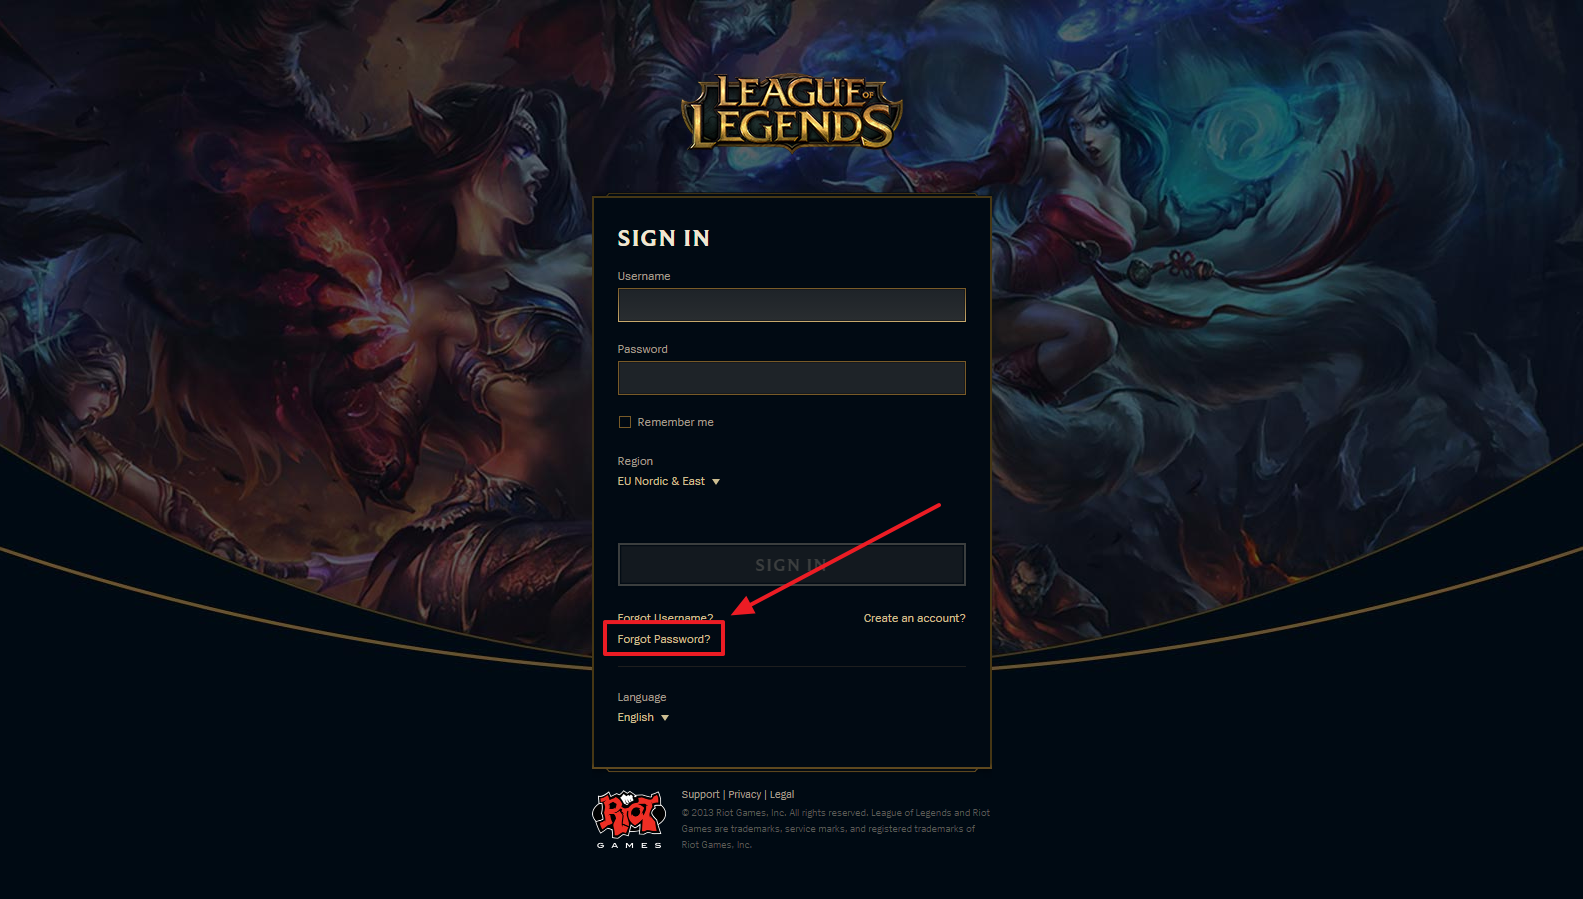 League Of Legends Forgot PaГџword